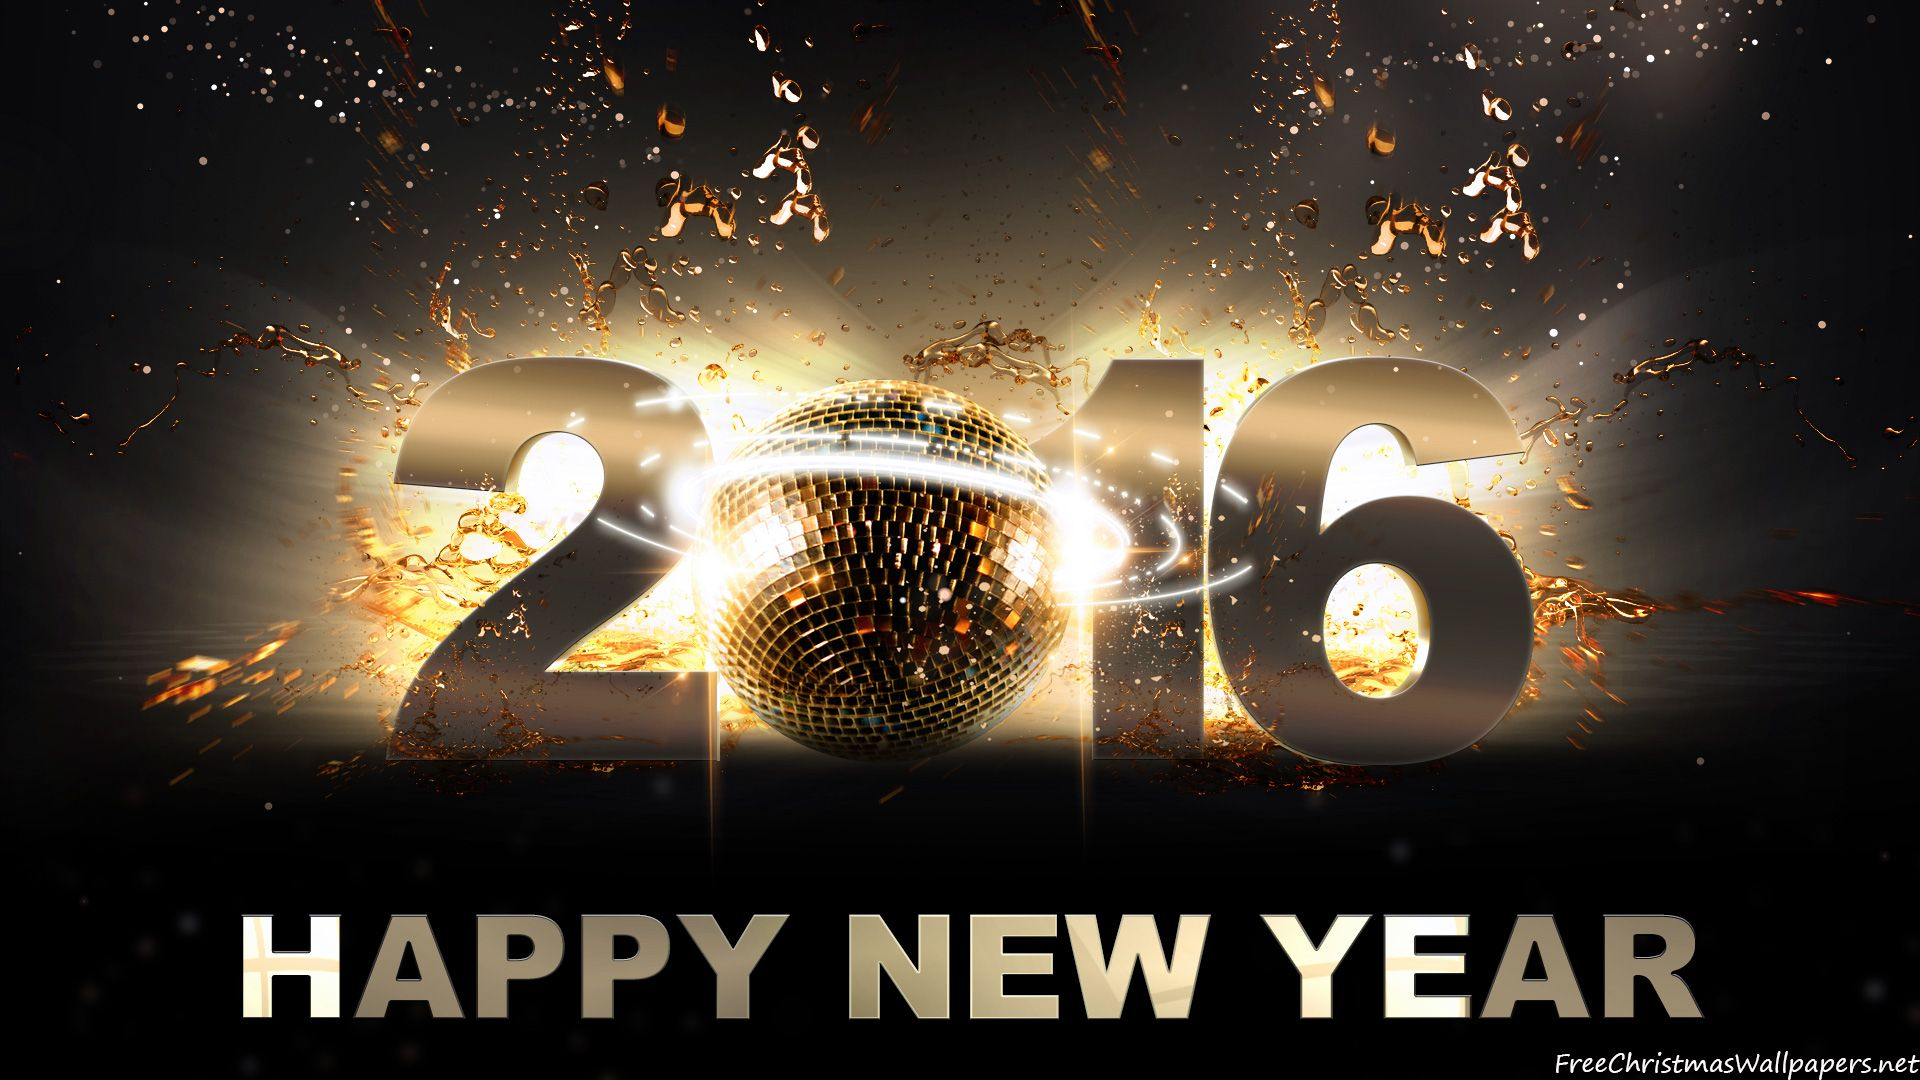 New Year EVE Wallpapers Images Wallpapers of New Year | Wallpapers ...